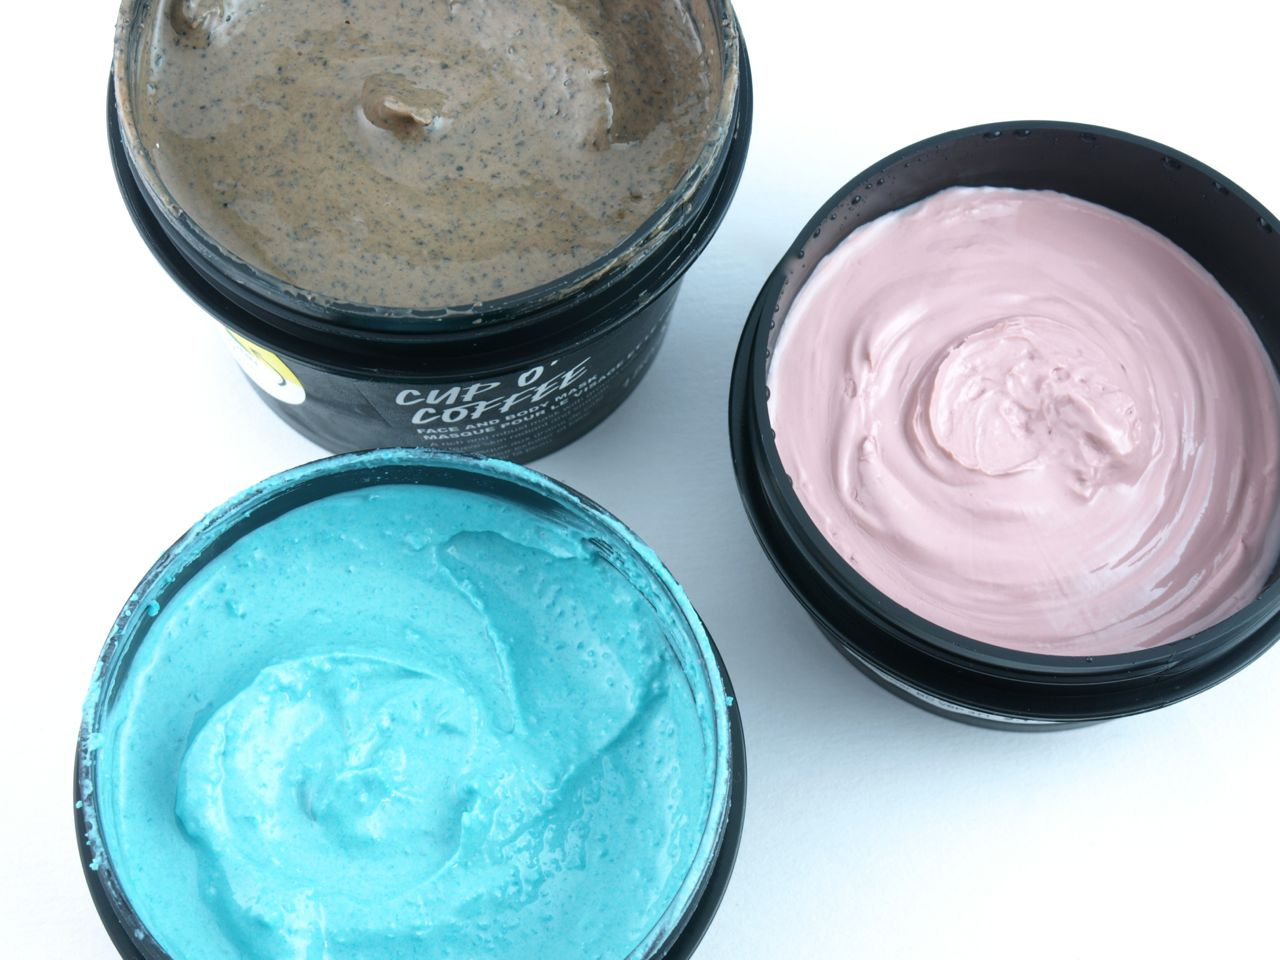 Dont look at me lush face mask review - The Fresh Face Masks From Lush Are Available In Recyclable Black Plastic Tubs Of A Few Different Sizes Depending On The Ingredients The Mask May Or May